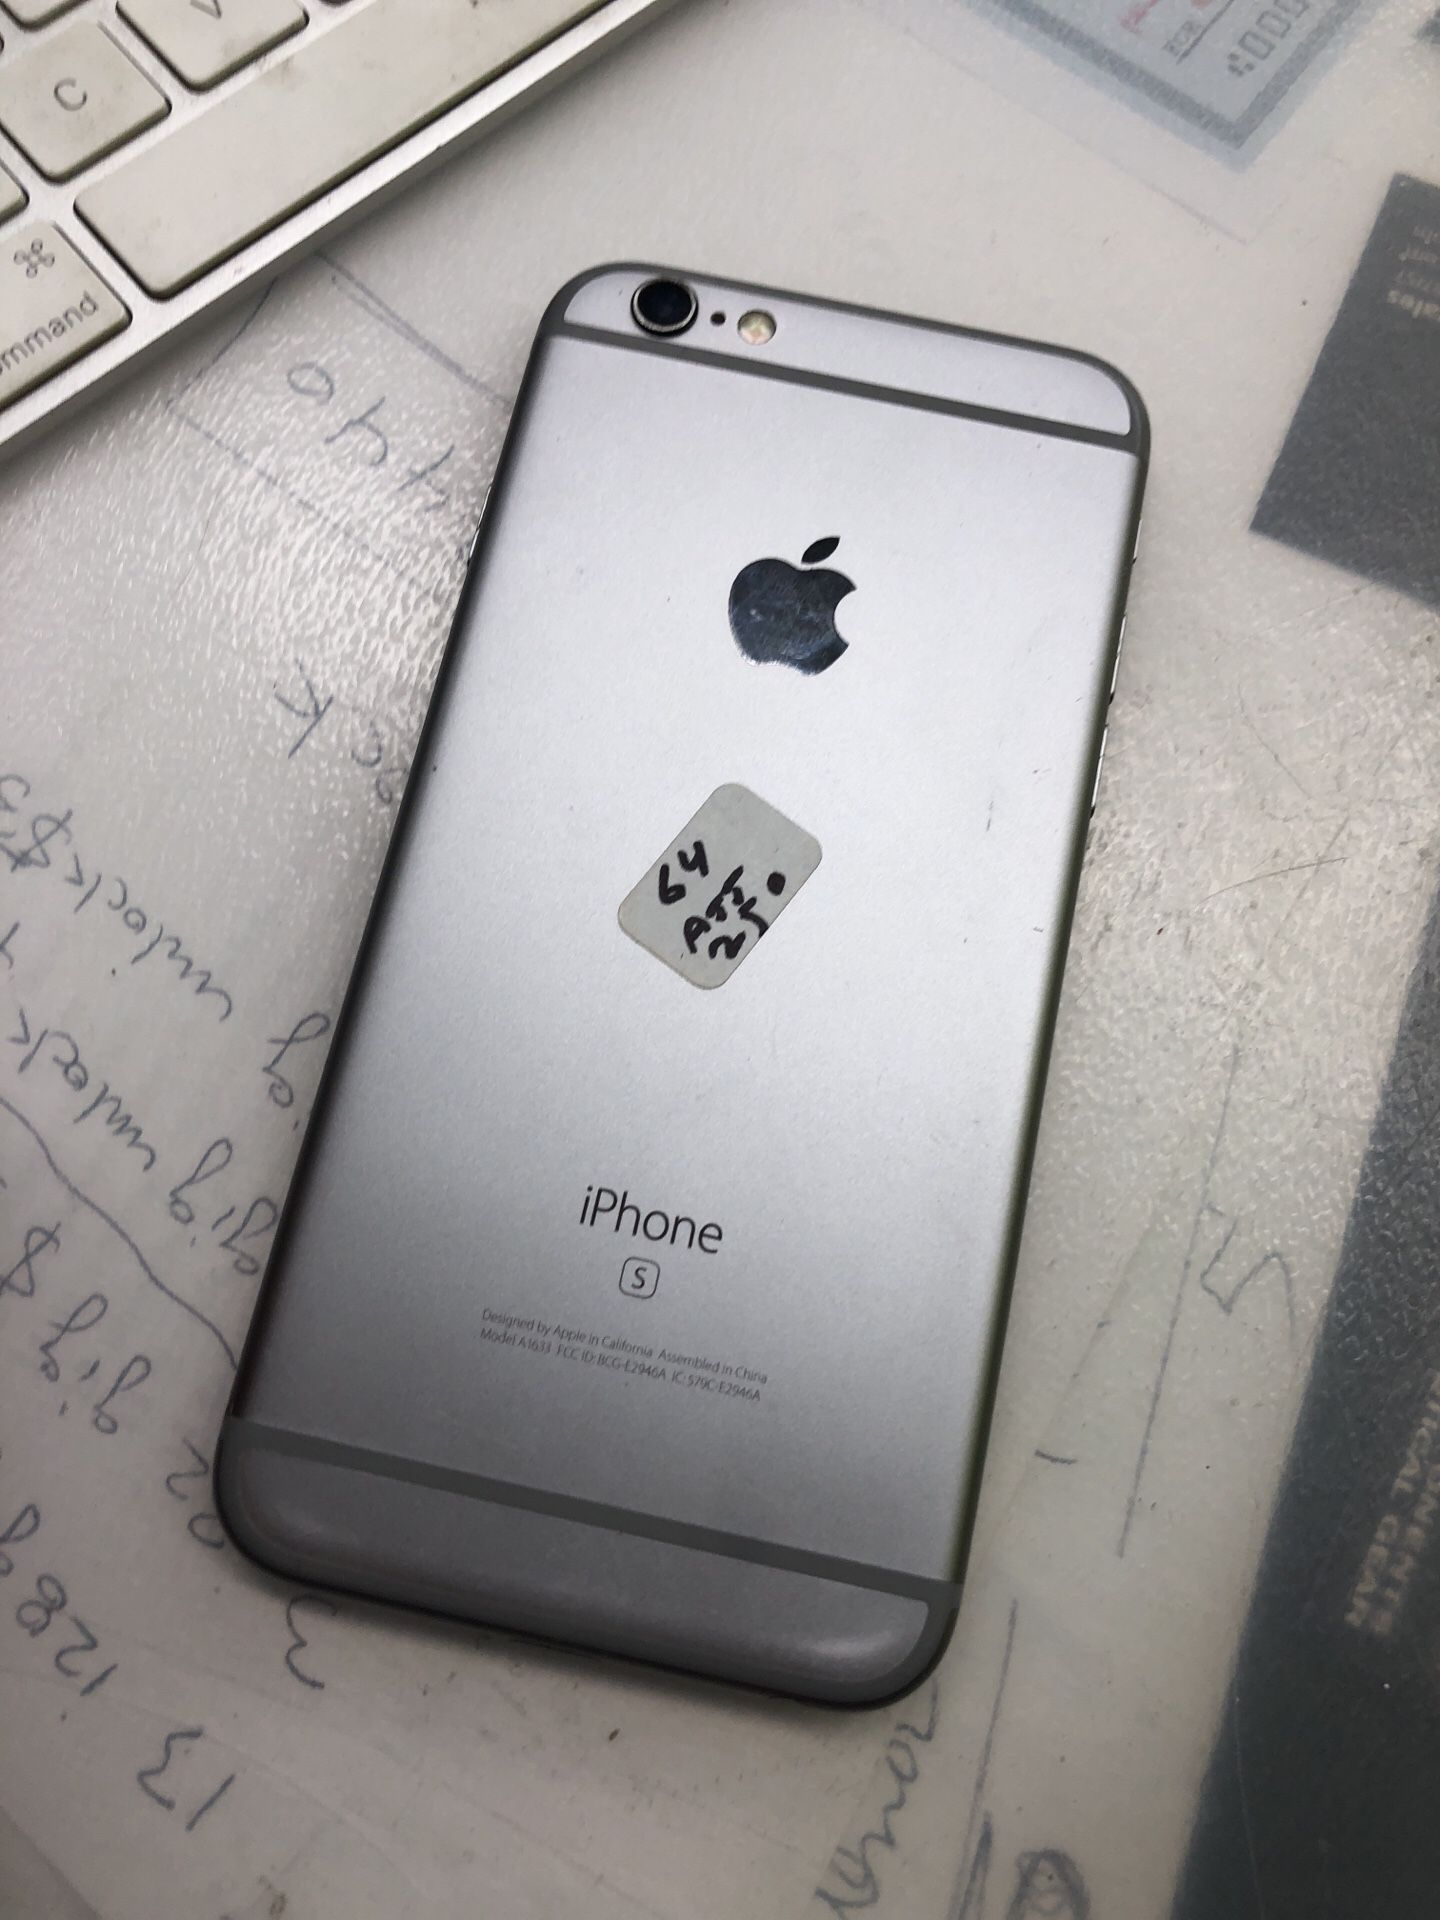 iPhone 6s for AT&T